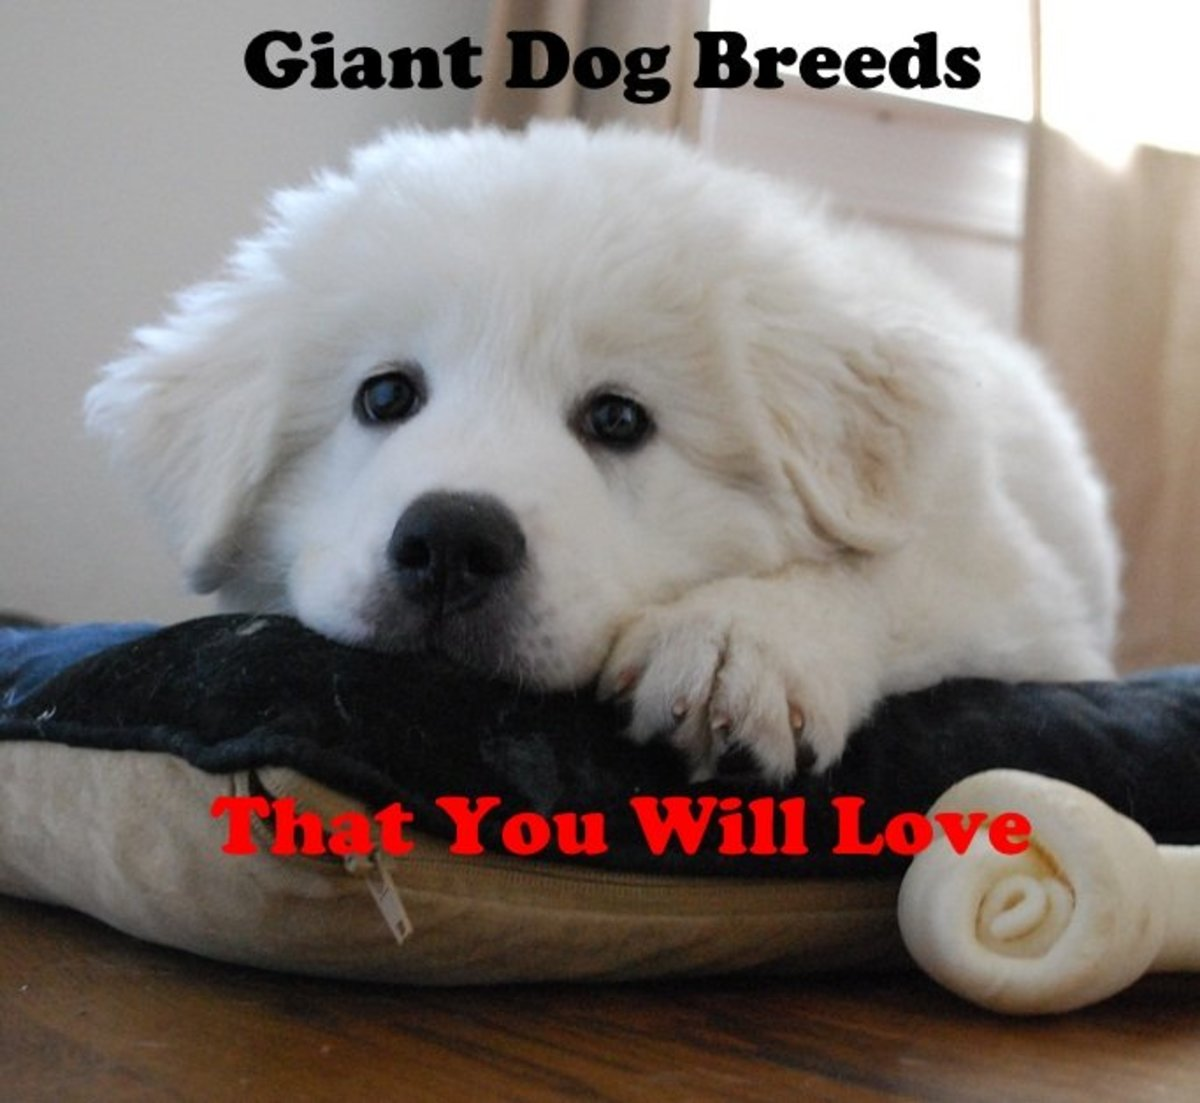 5 Giant Dog Breeds That You Will Love